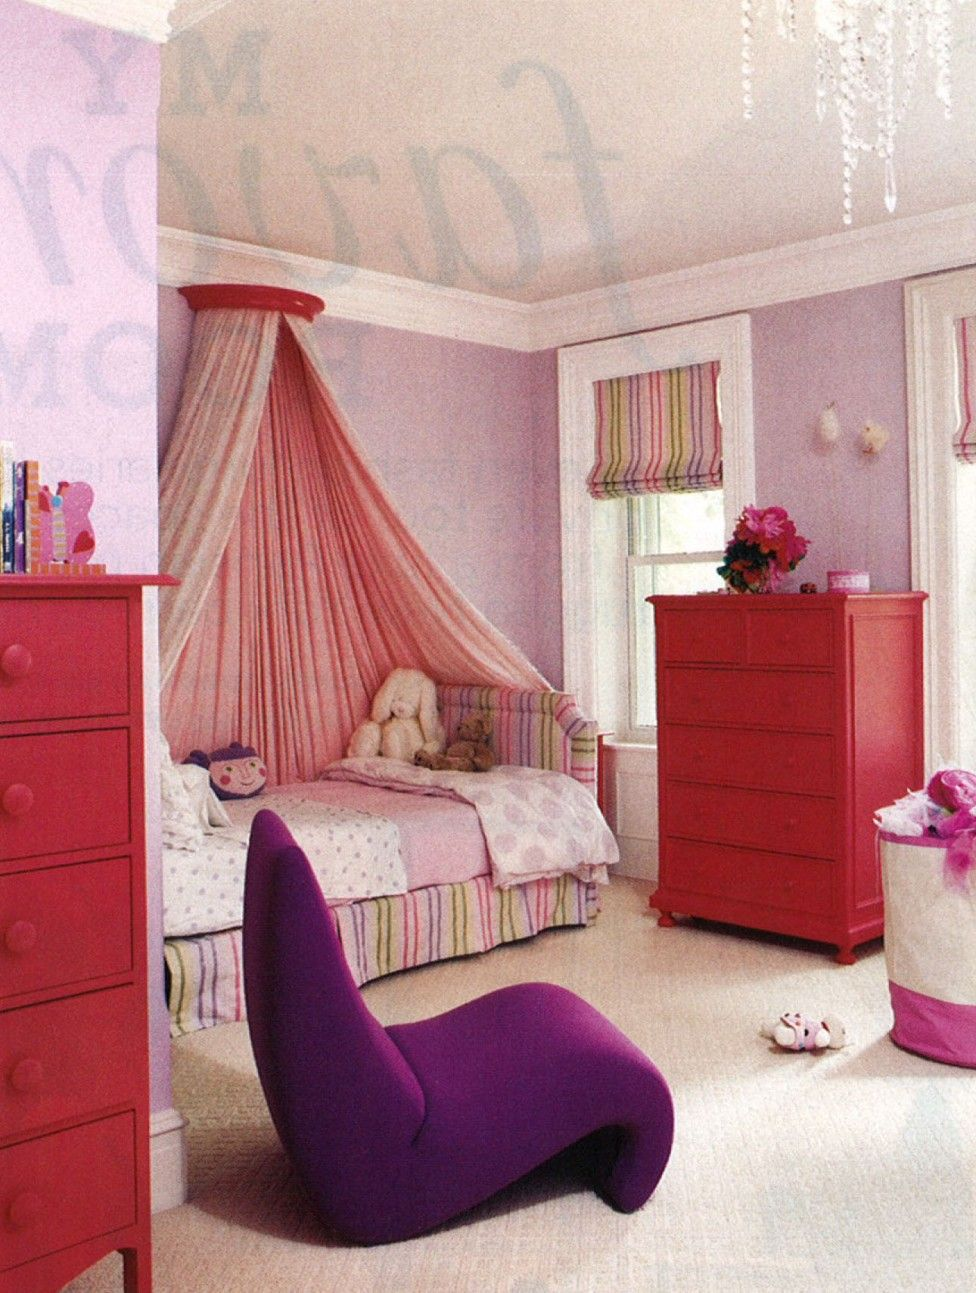 Bedroom For Girls Things For A 13 Year Old Girls Bedroom  Google Search  For The